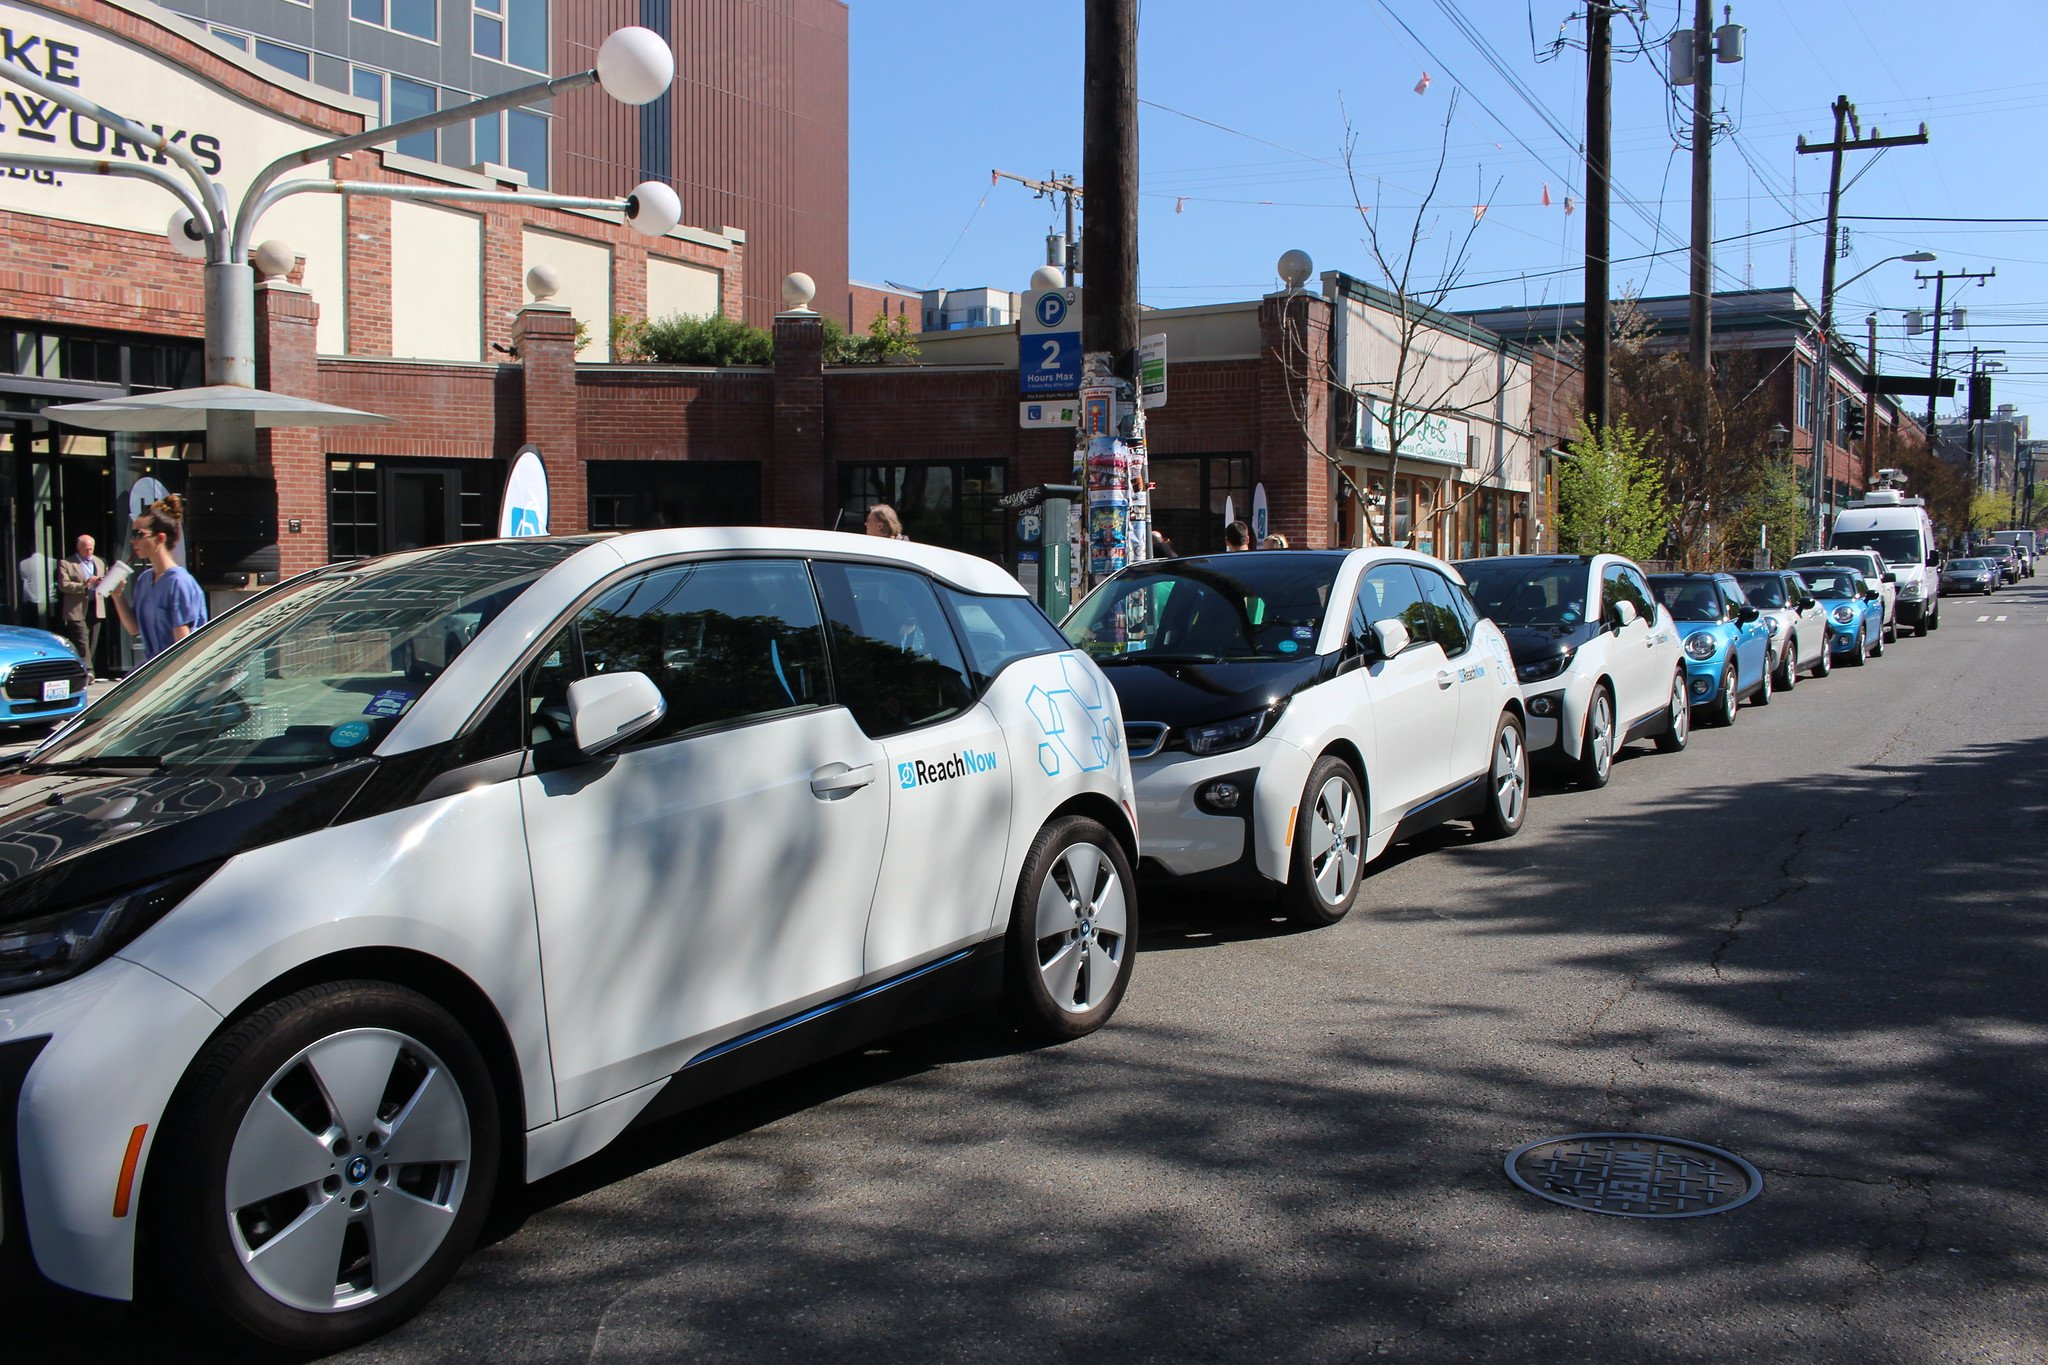 ReachNow Ceases Ride-Hailing and Carsharing Service